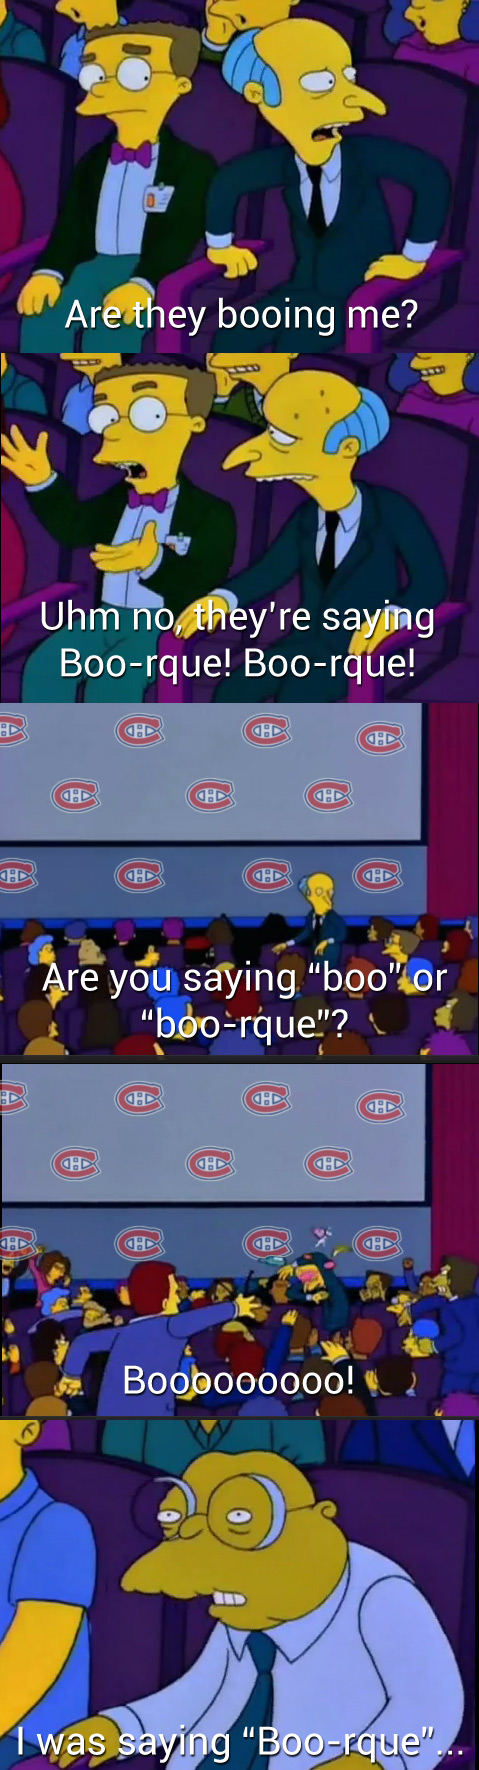 A recreation of the 'boo-urns' scene from the Simpsons with 'boo-rque'